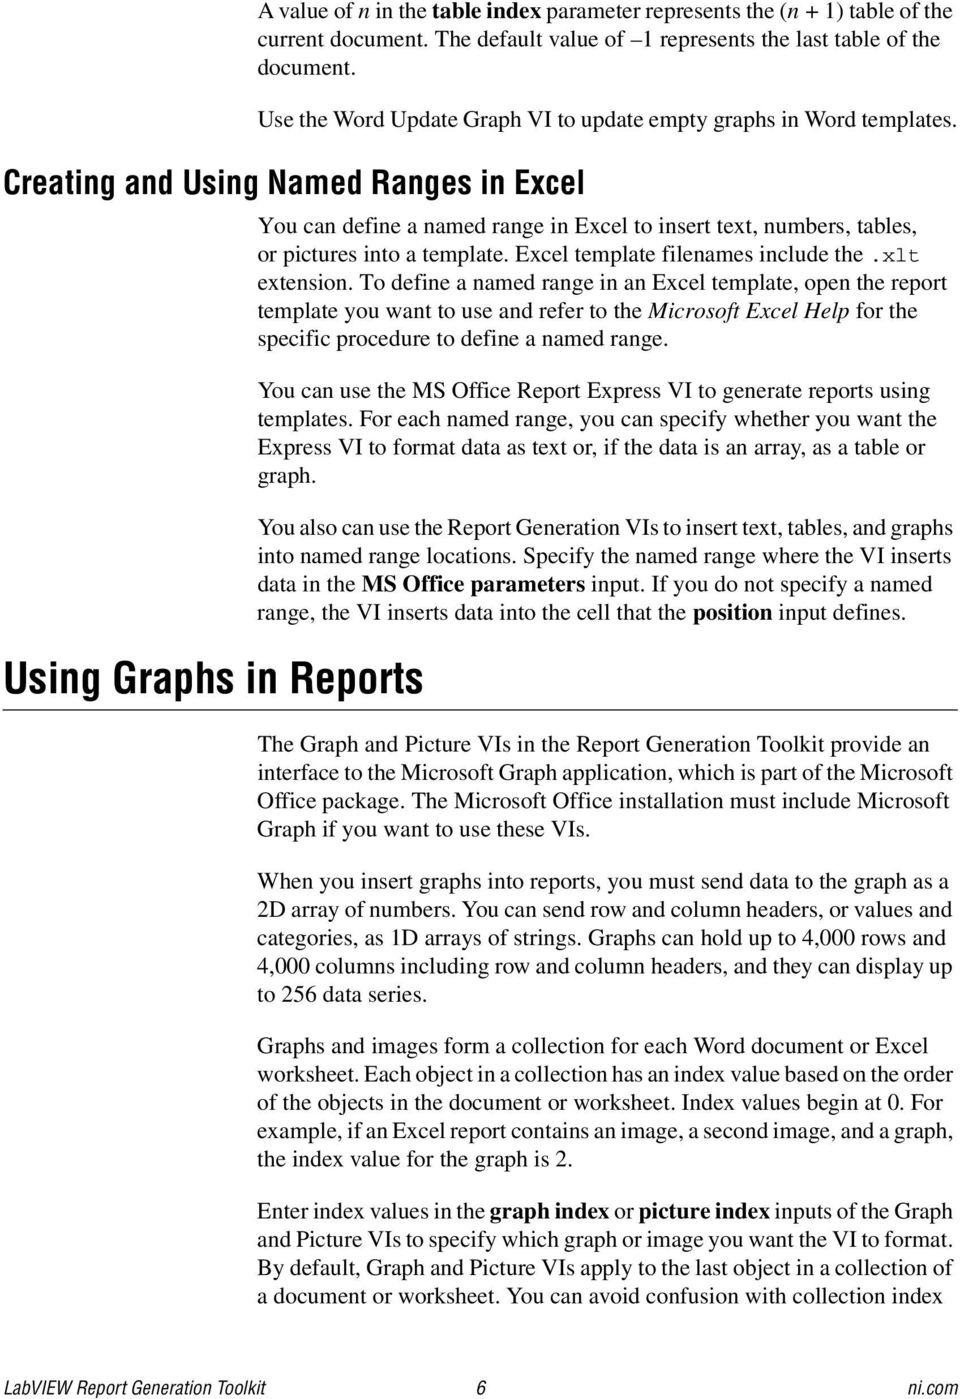 Labview report generation toolkit for microsoft office pdf creating and using named ranges in excel using graphs in reports you can define a named ibookread Download